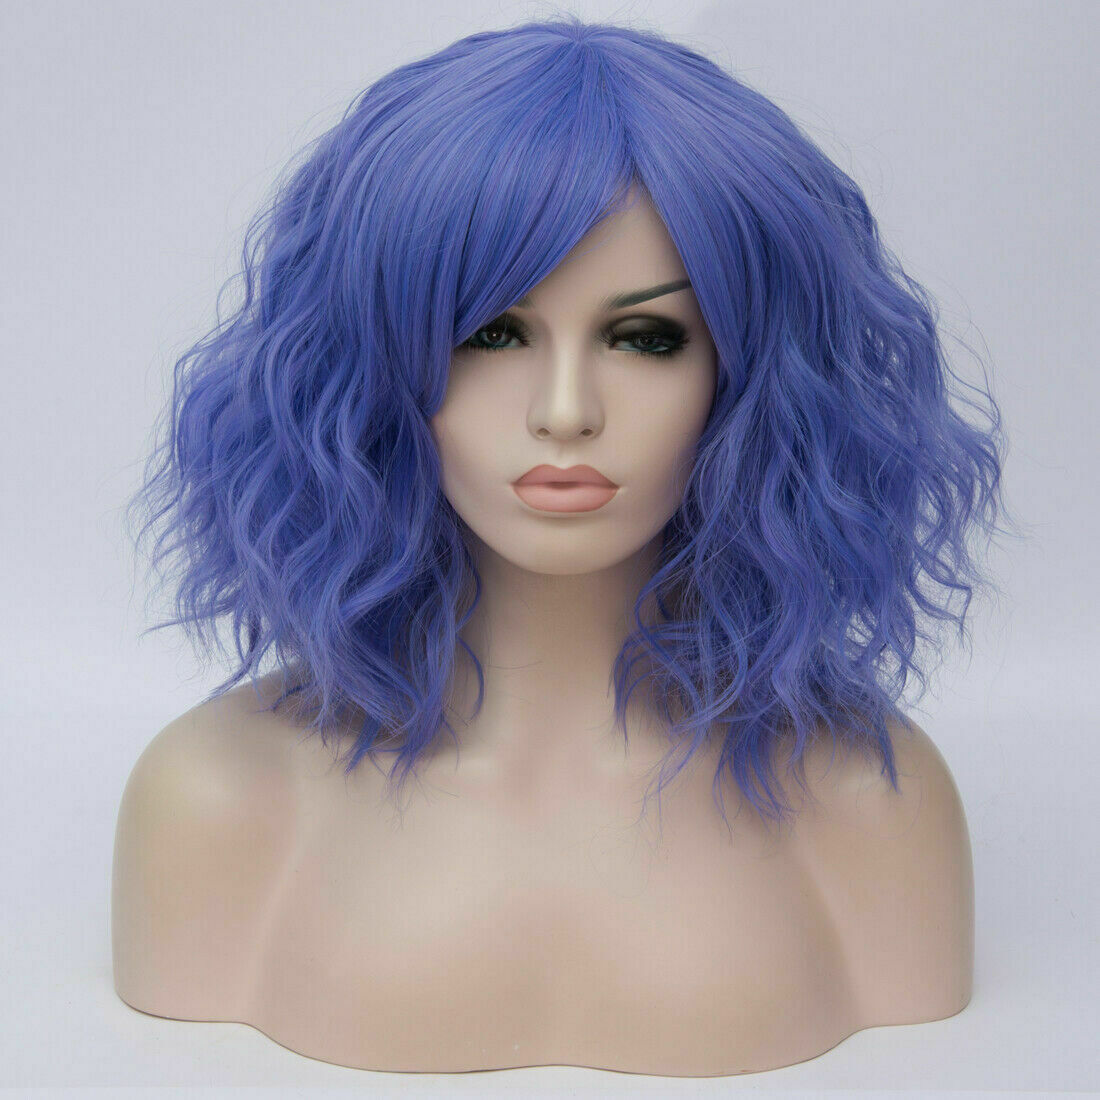 Lolita-Women-039-s-Short-Curly-Anime-Synthetic-Hair-Heat-Resistant-Cosplay-Party-Wig miniature 74